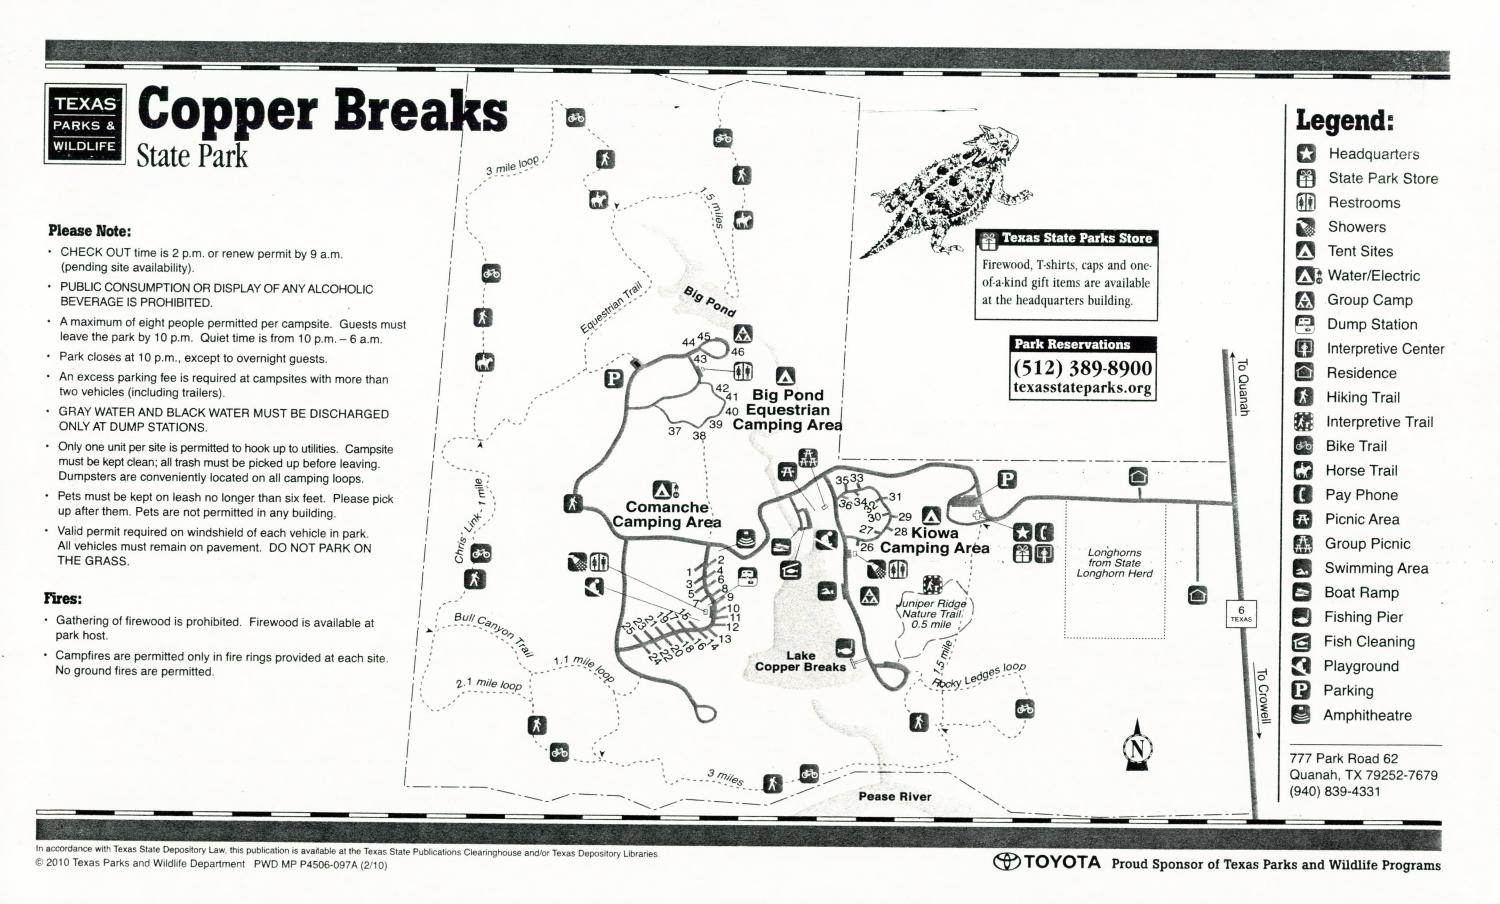 Copper Breaks State Park, Map of the Copper Breaks State Park outlining hiking trails and highlighting activities, facilities, and other features such as bathrooms, lodgings, water/electric, etc. It also contains general information for the park and for the Texas Parks and Wildlife Department.,